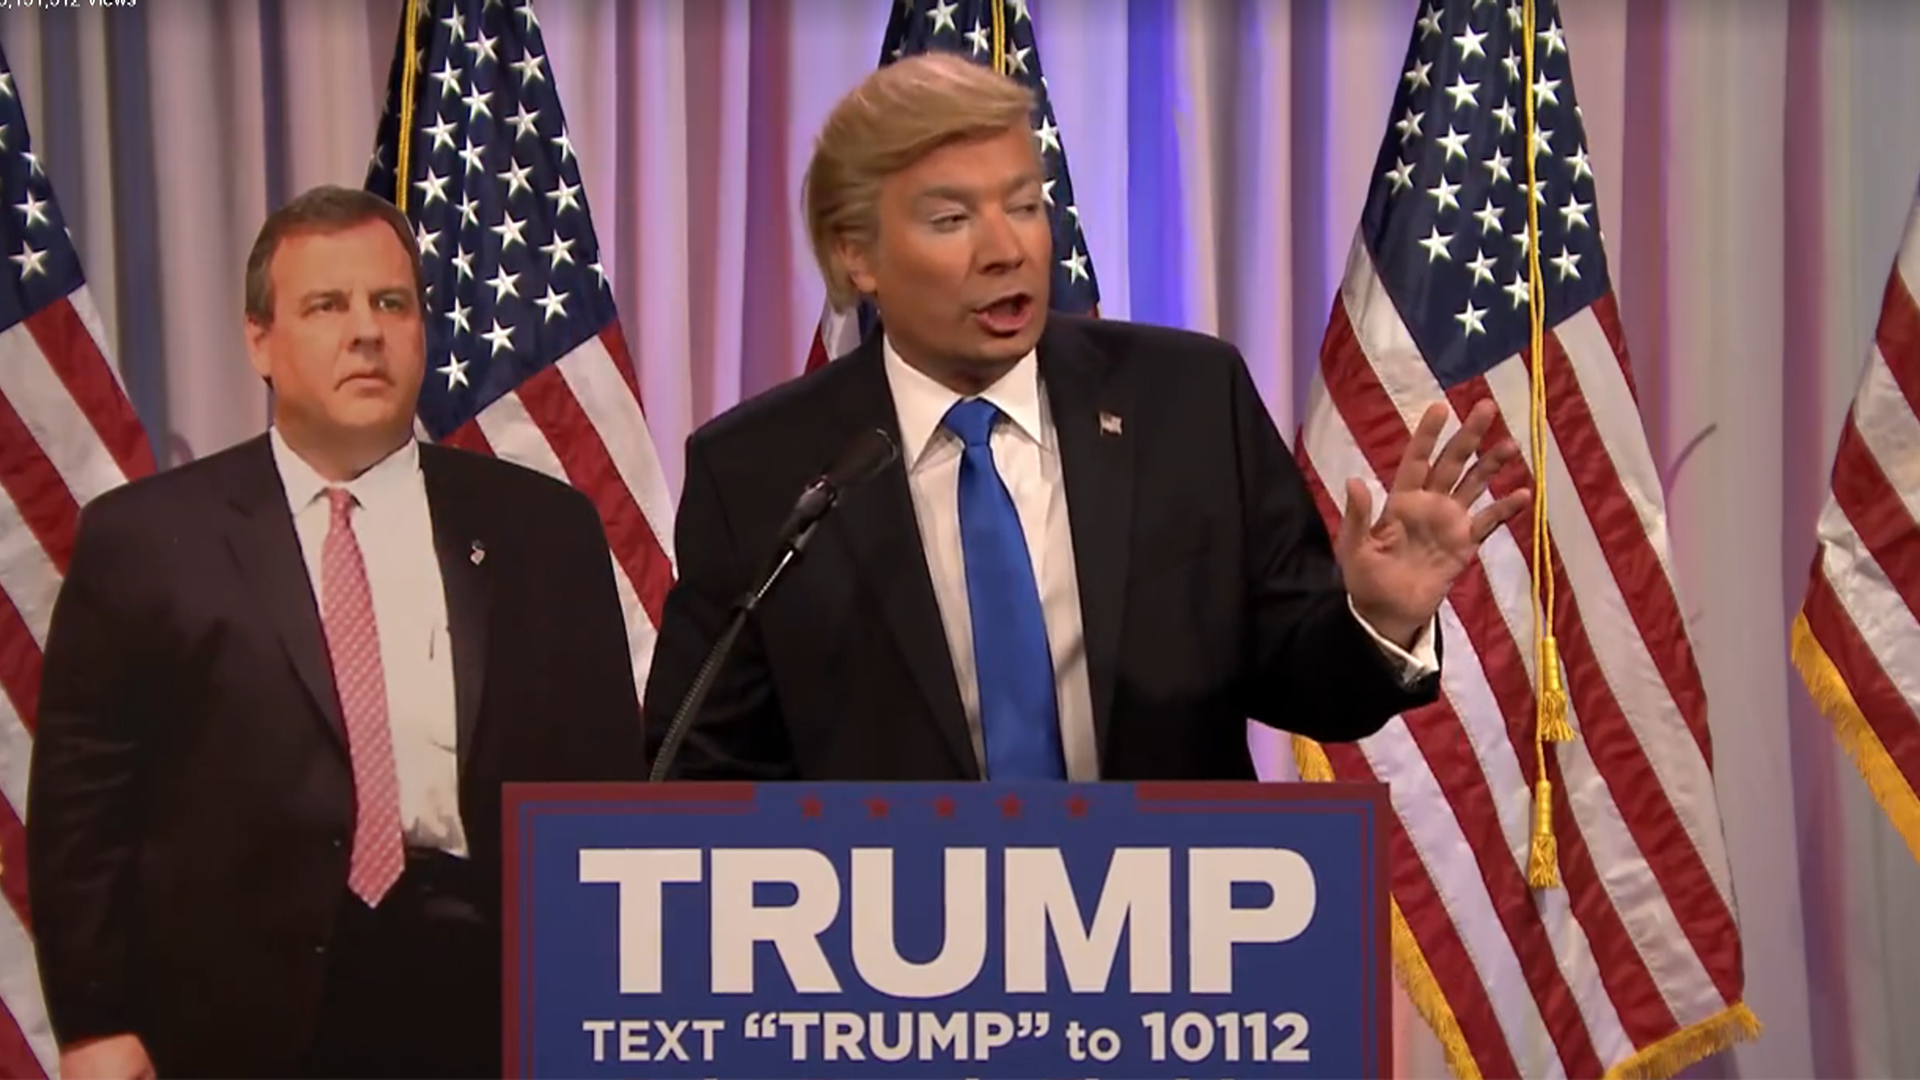 Watch Jimmy Fallon impersonate Donald Trump in hilarious 'Super Tuesday' speech - Today.com